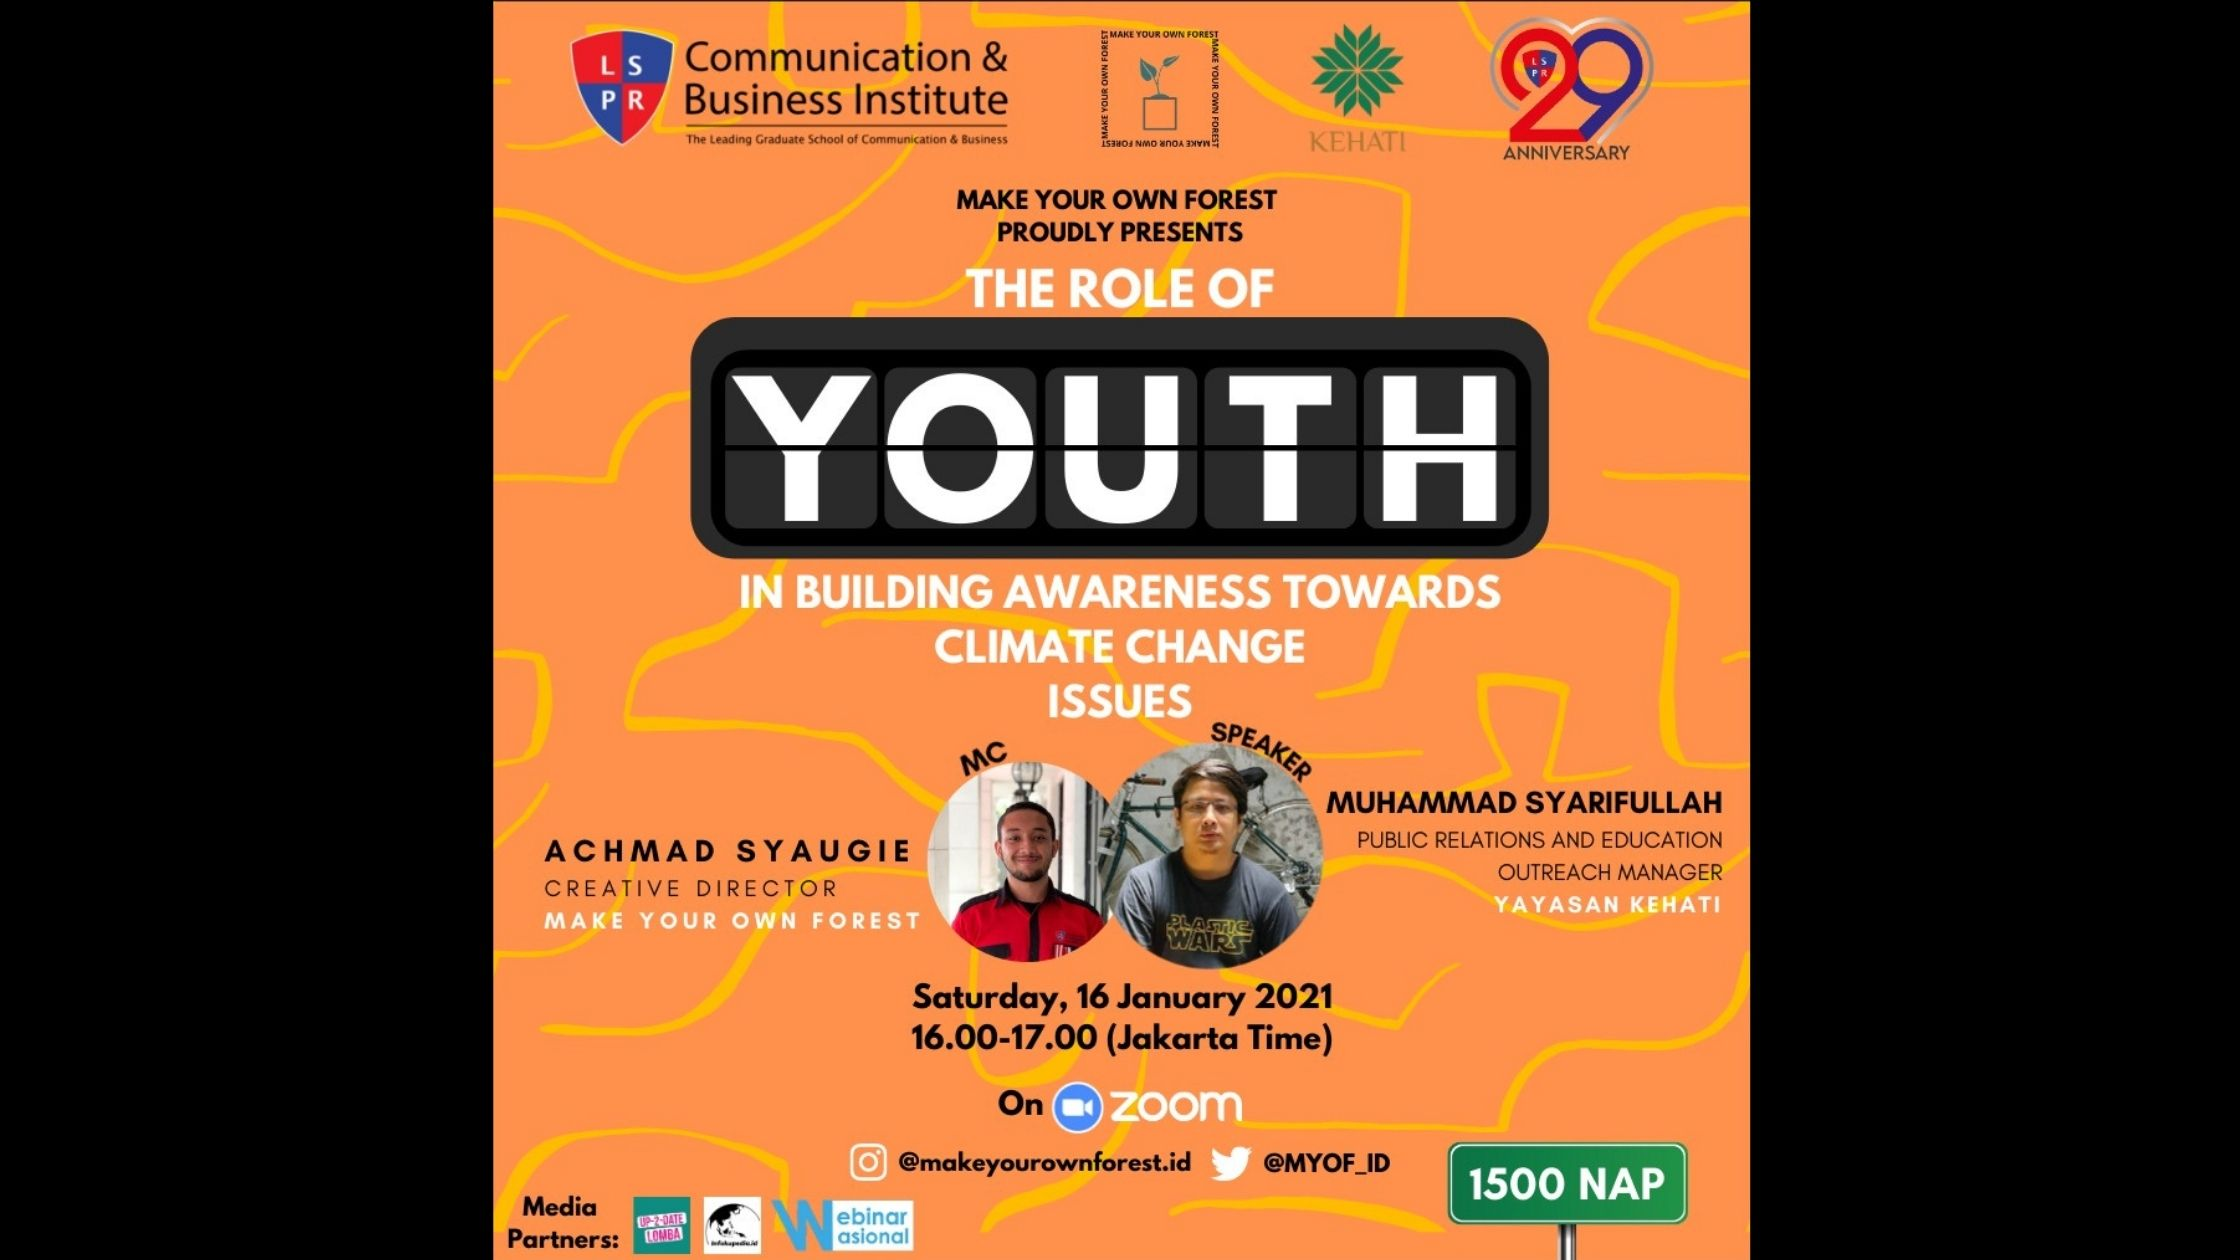 [HEADLINE] The Role of Youth in Building Awareness Towards Climate Change Issues